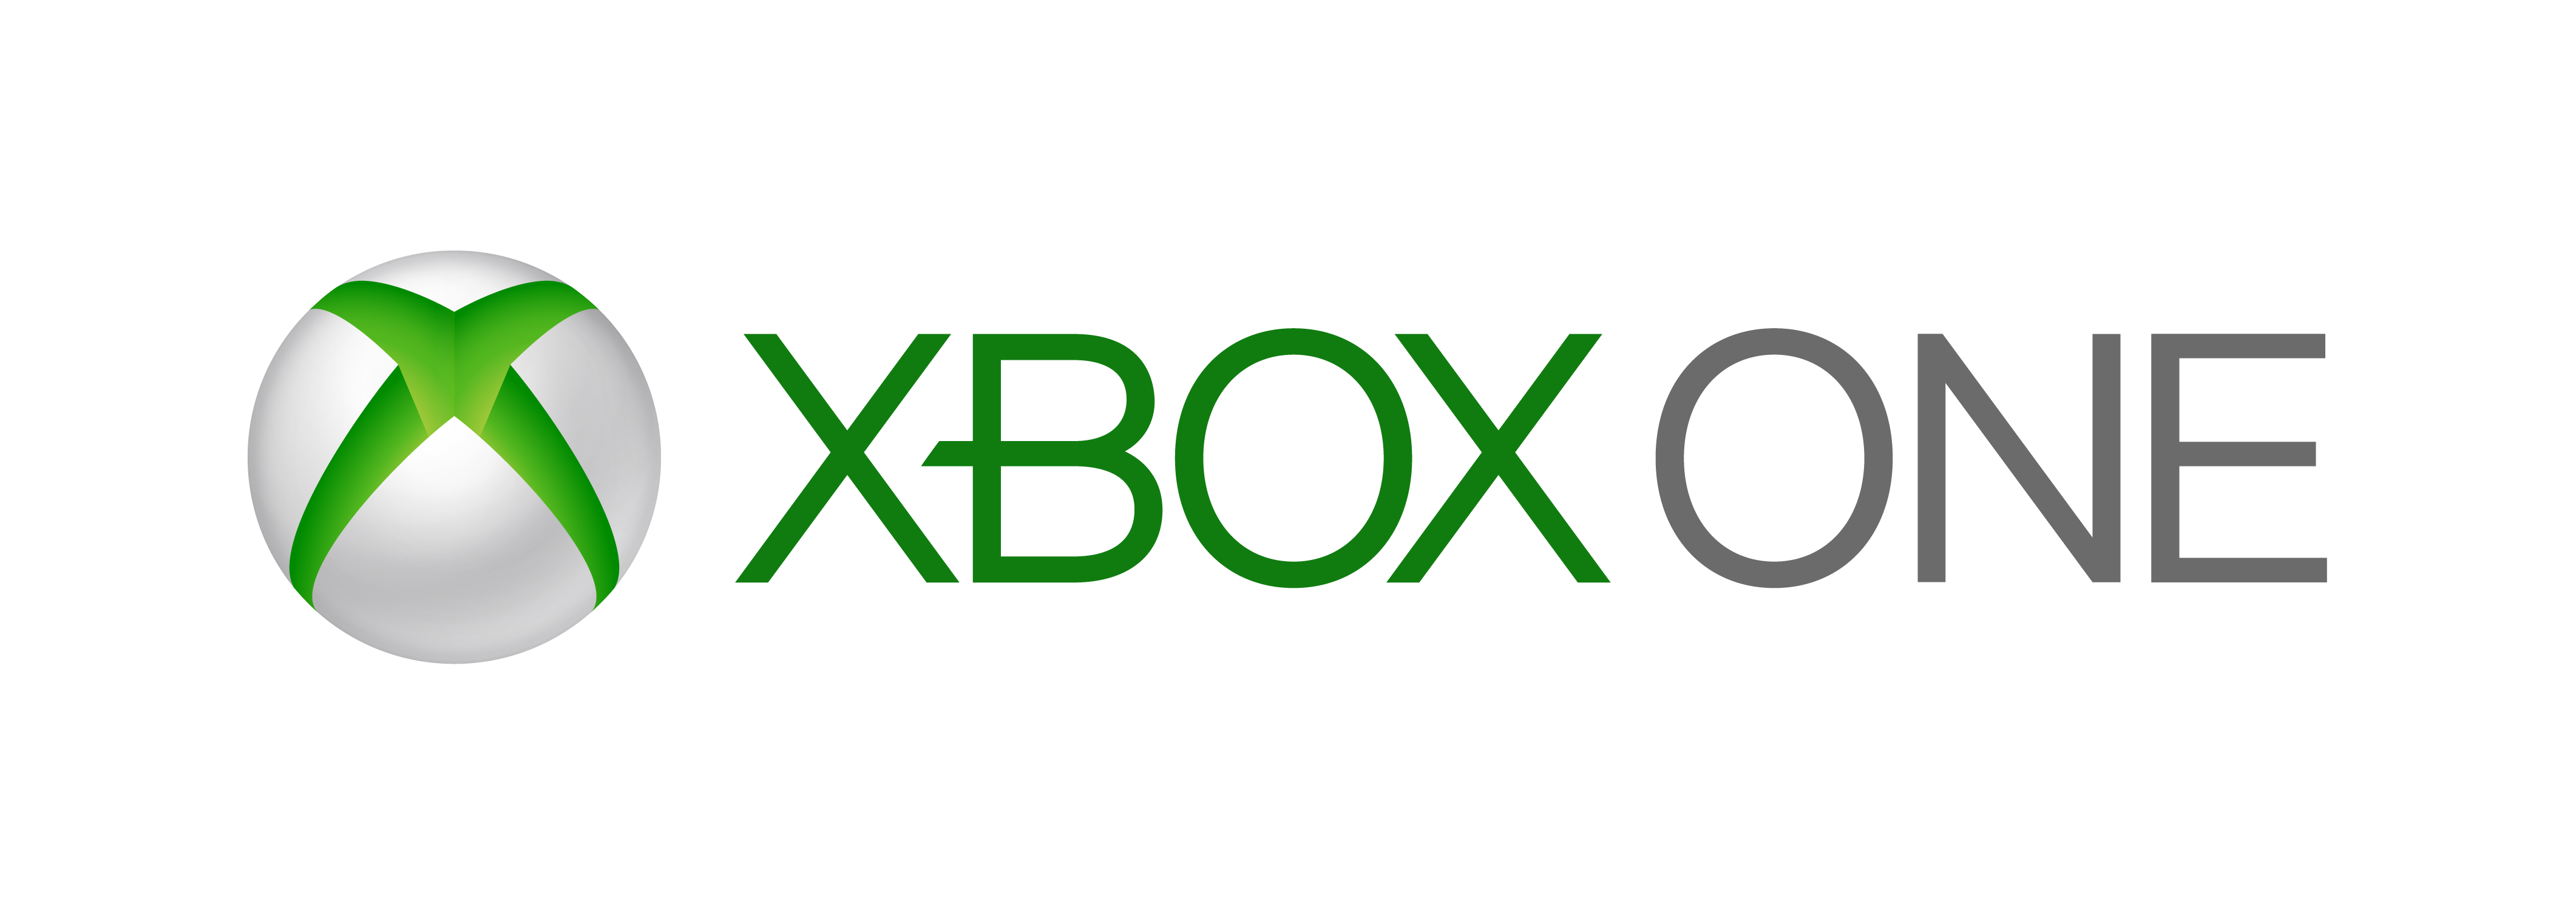 xbox-one-logo Xbox One Transparent